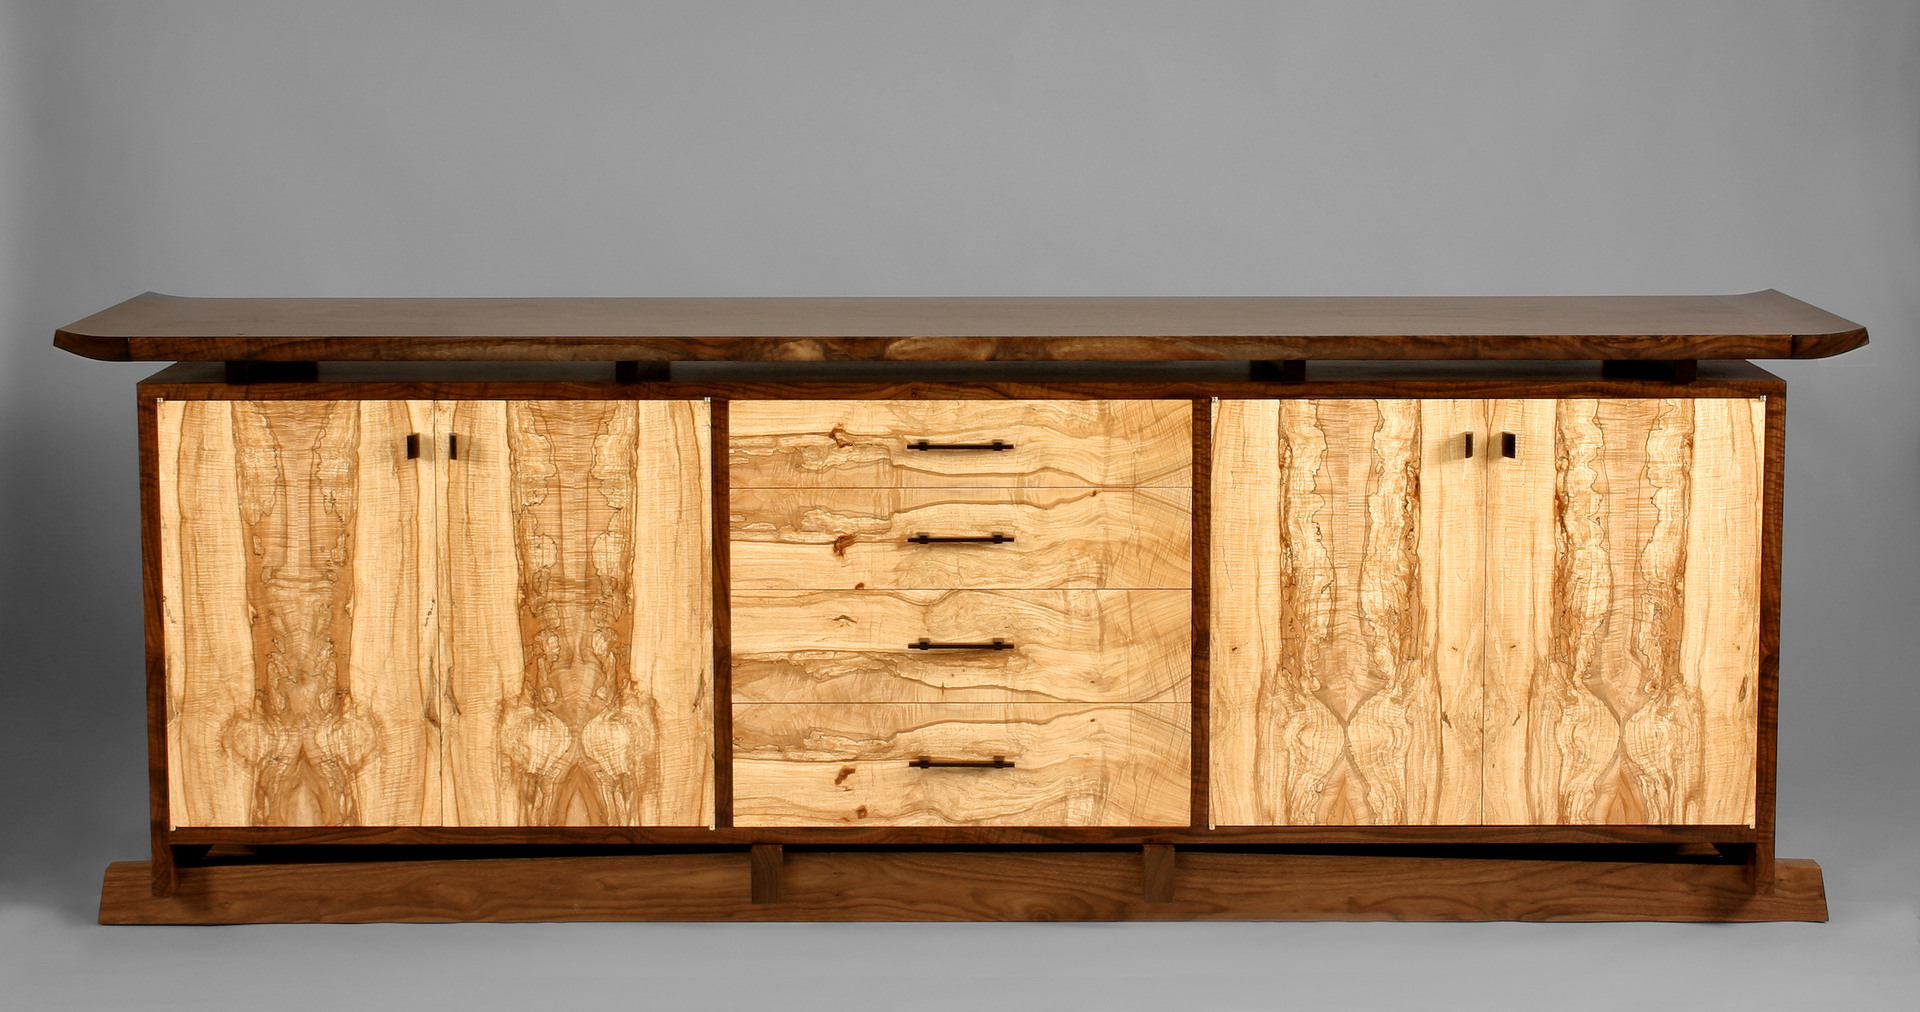 Spectacular spalted maple buffet by Stewart Wurtz